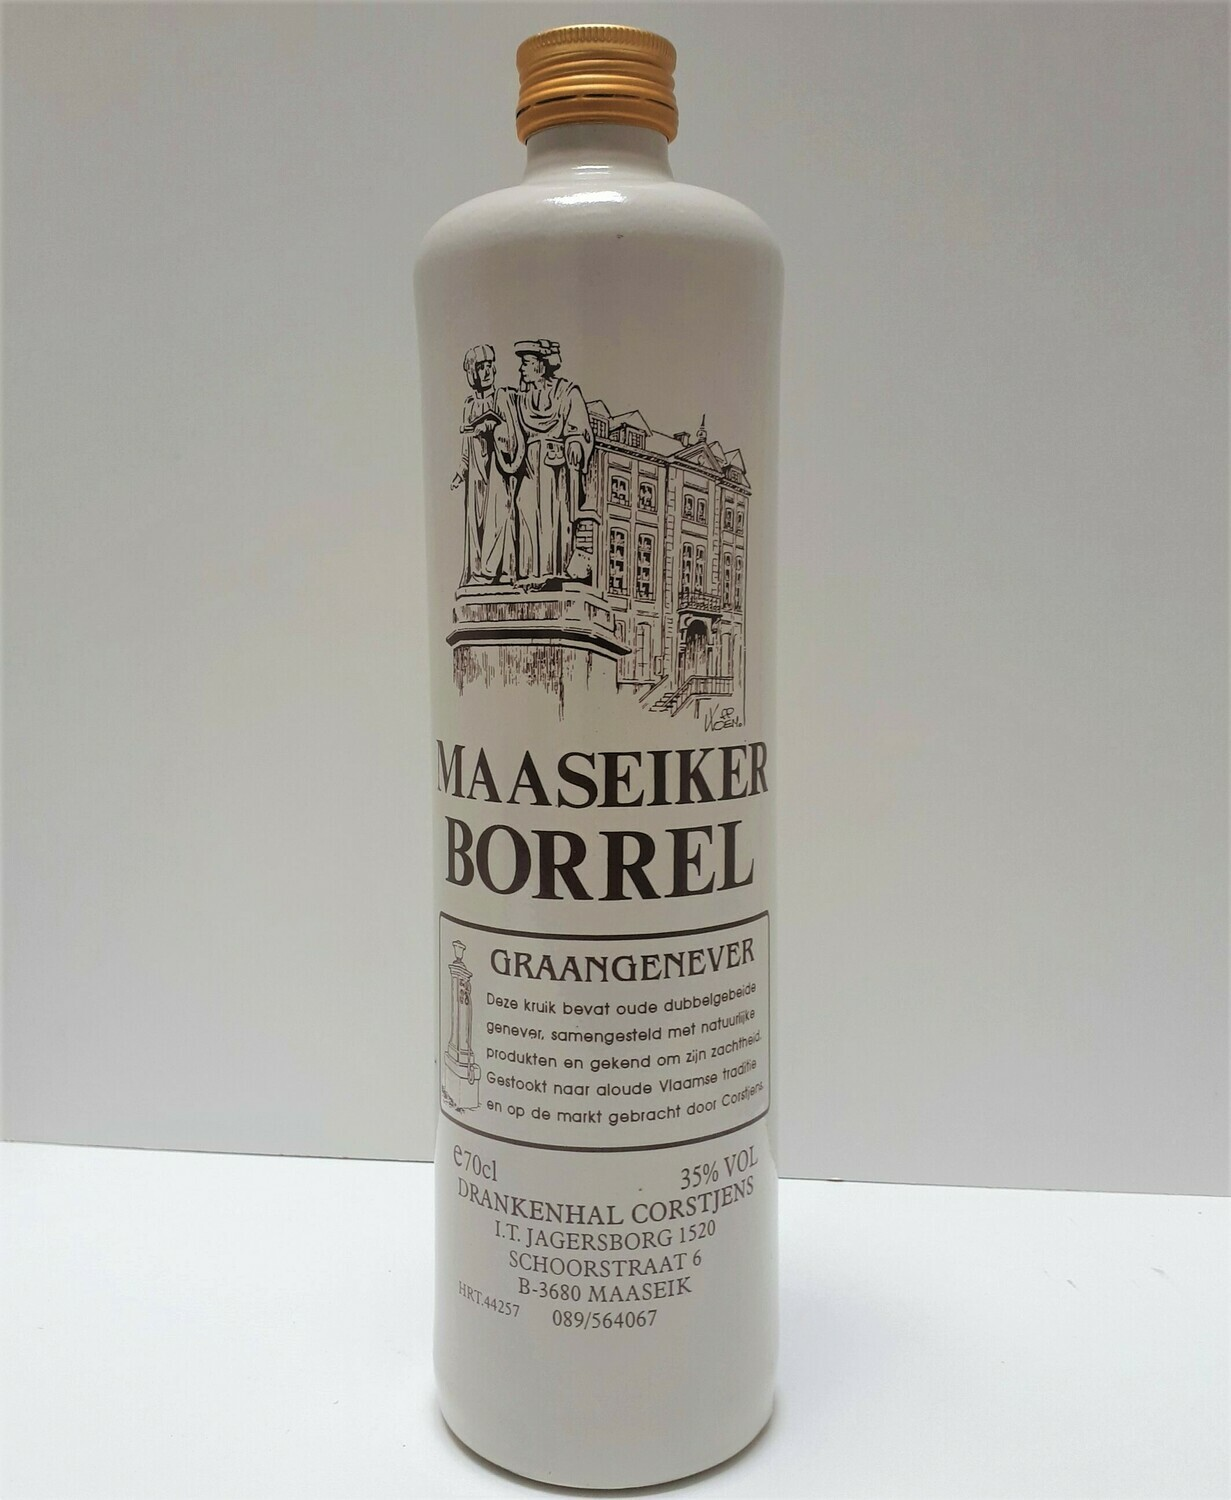 Maaseiker borrel